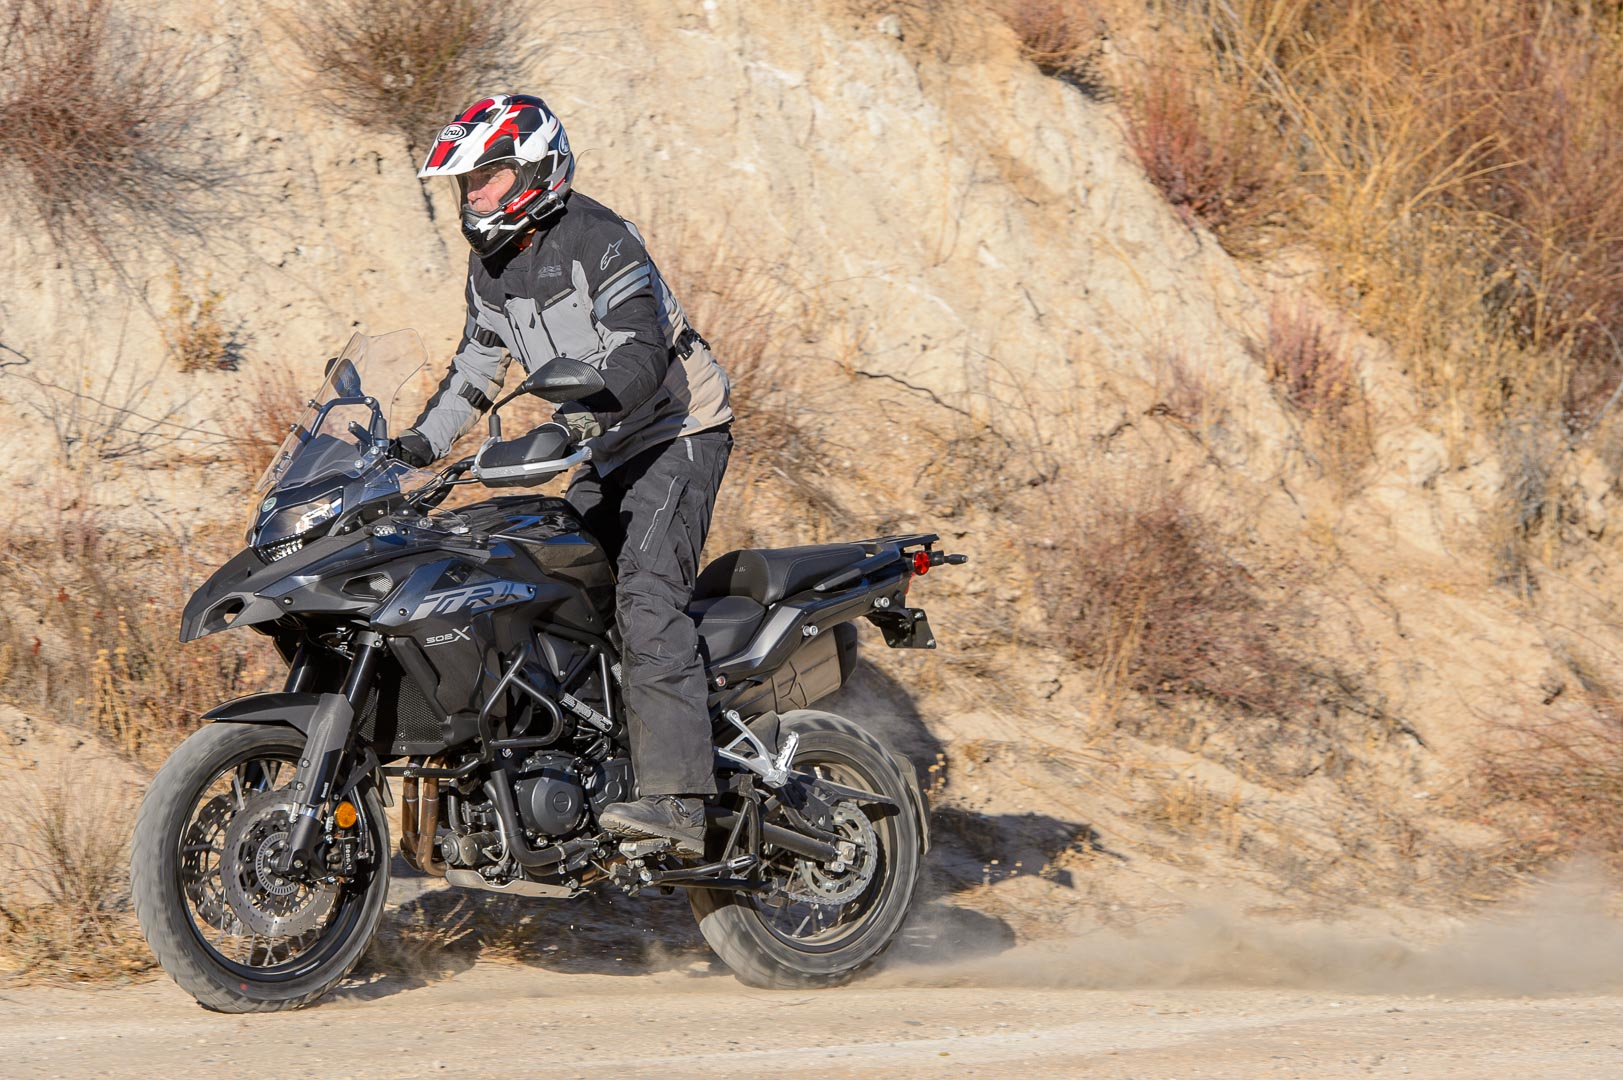 2021 Benelli TRK502X Review: ADV motorcycle